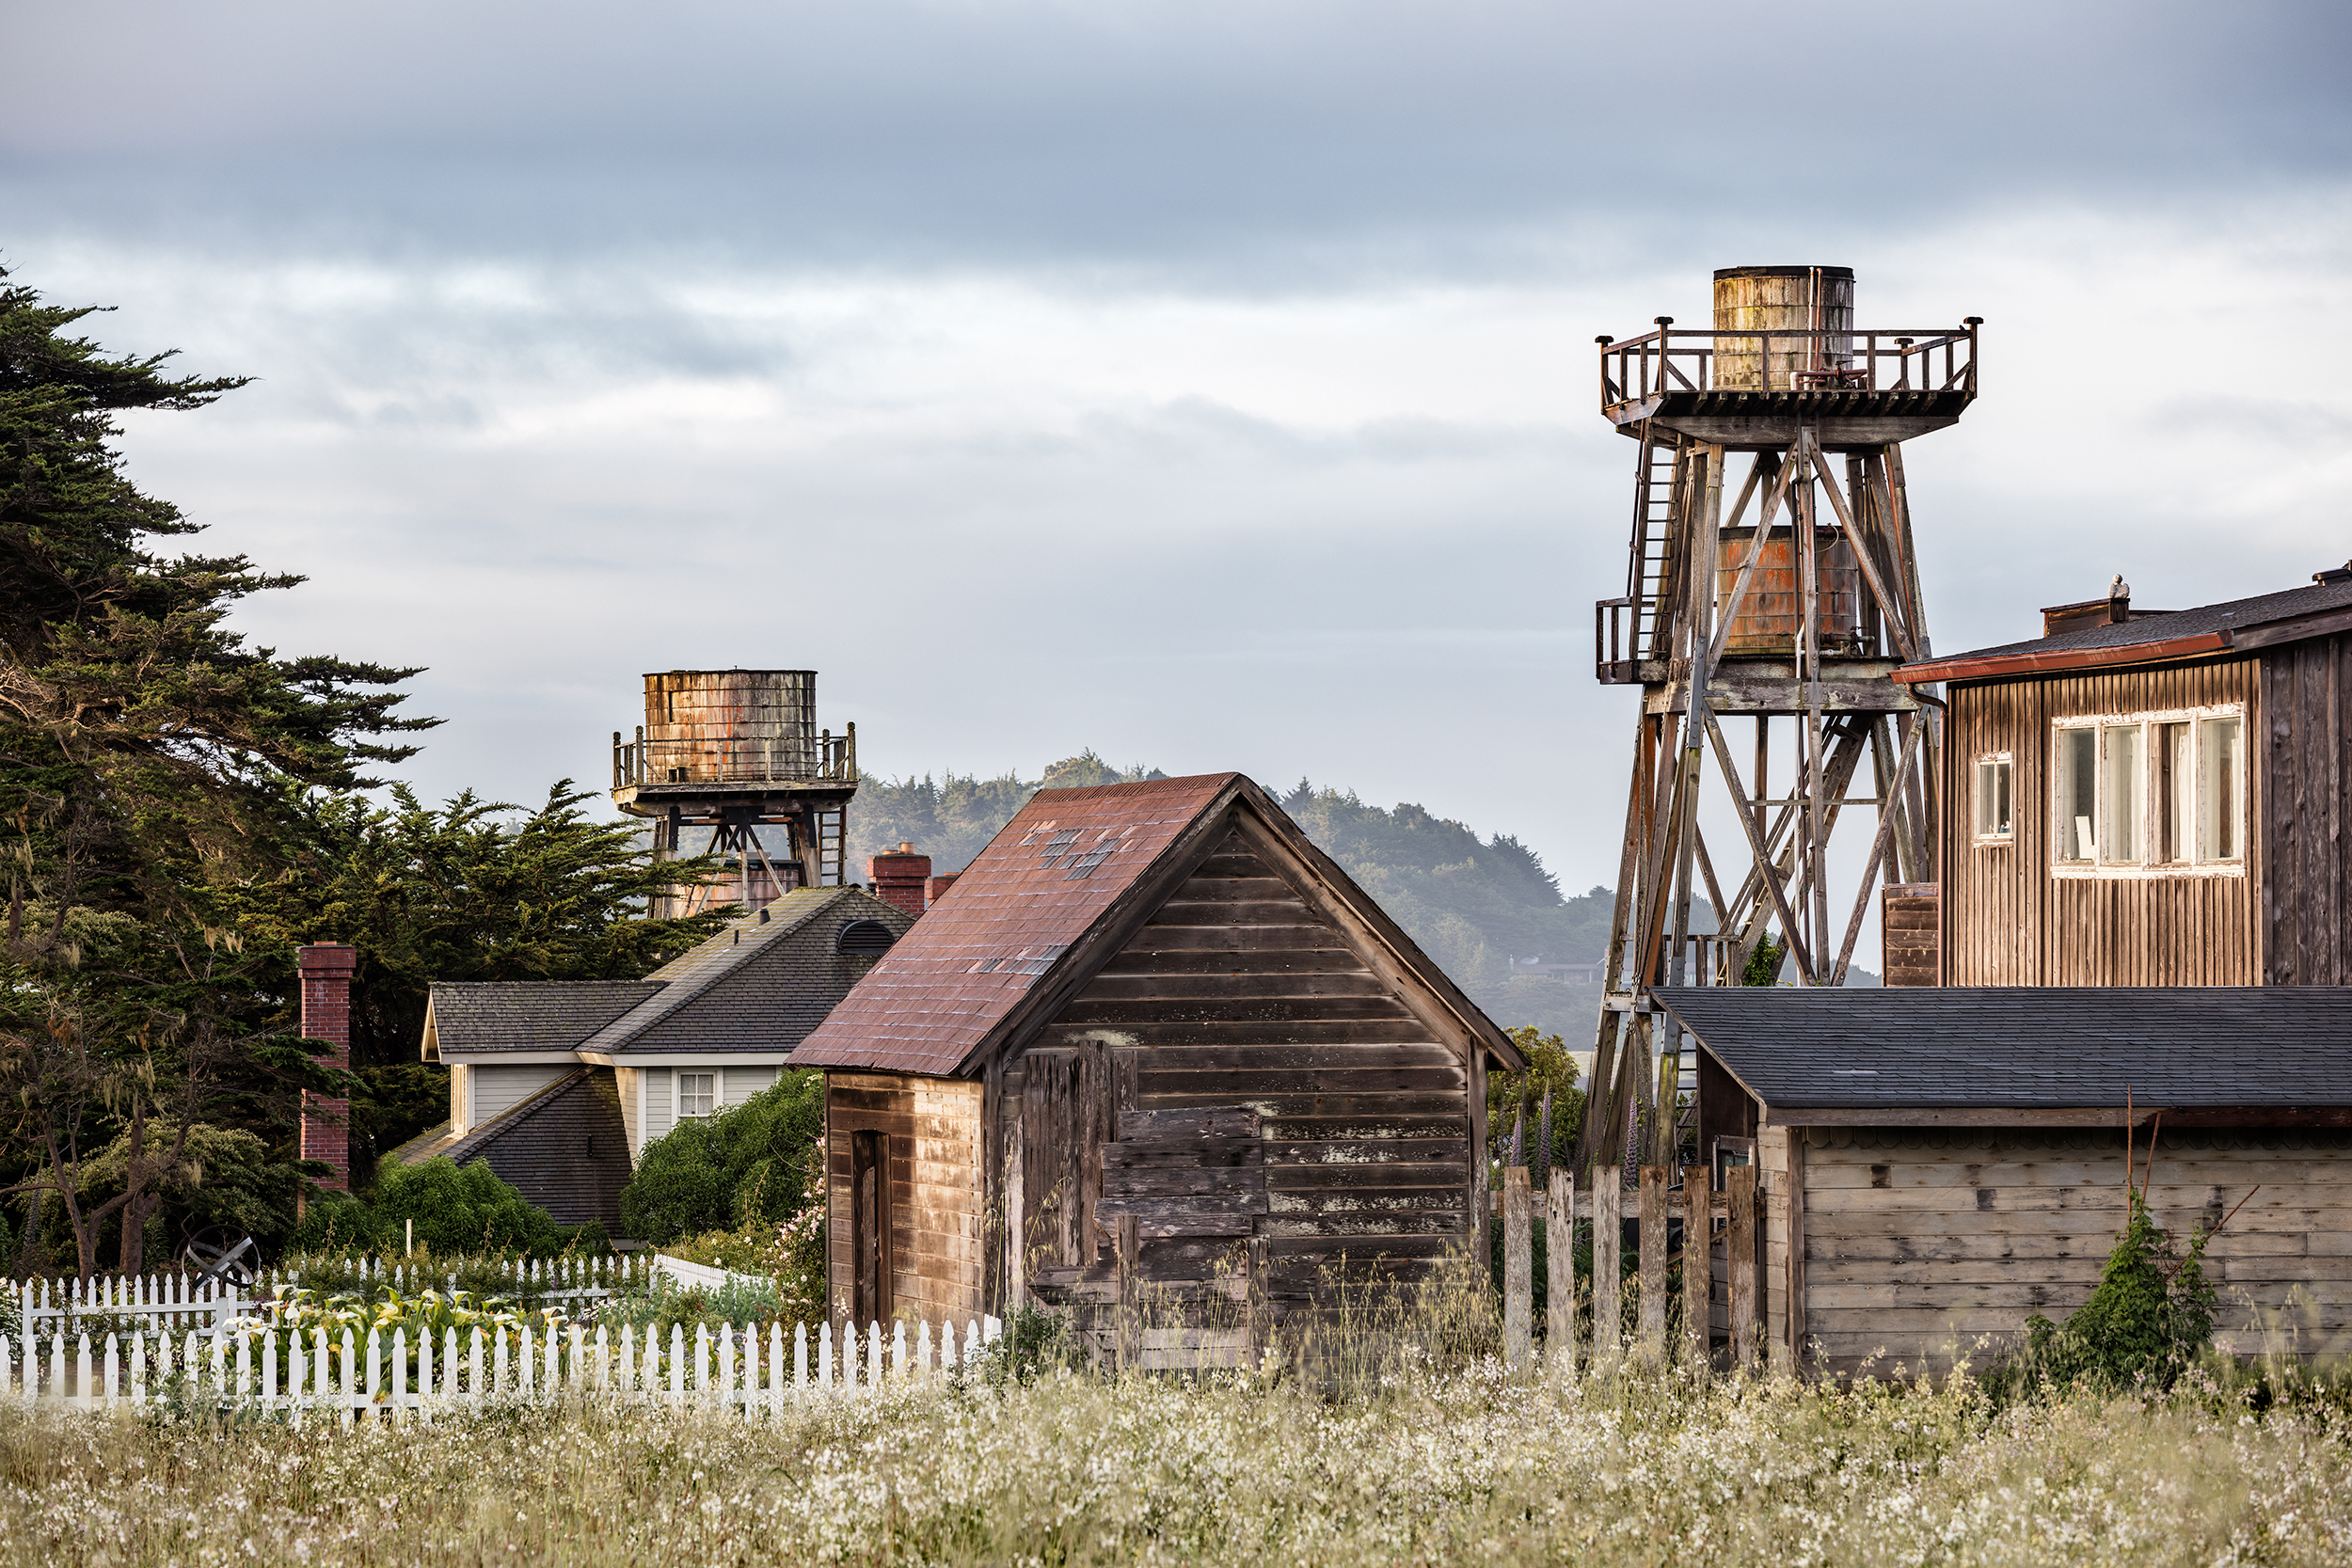 Mendocino Water Towers (2925)